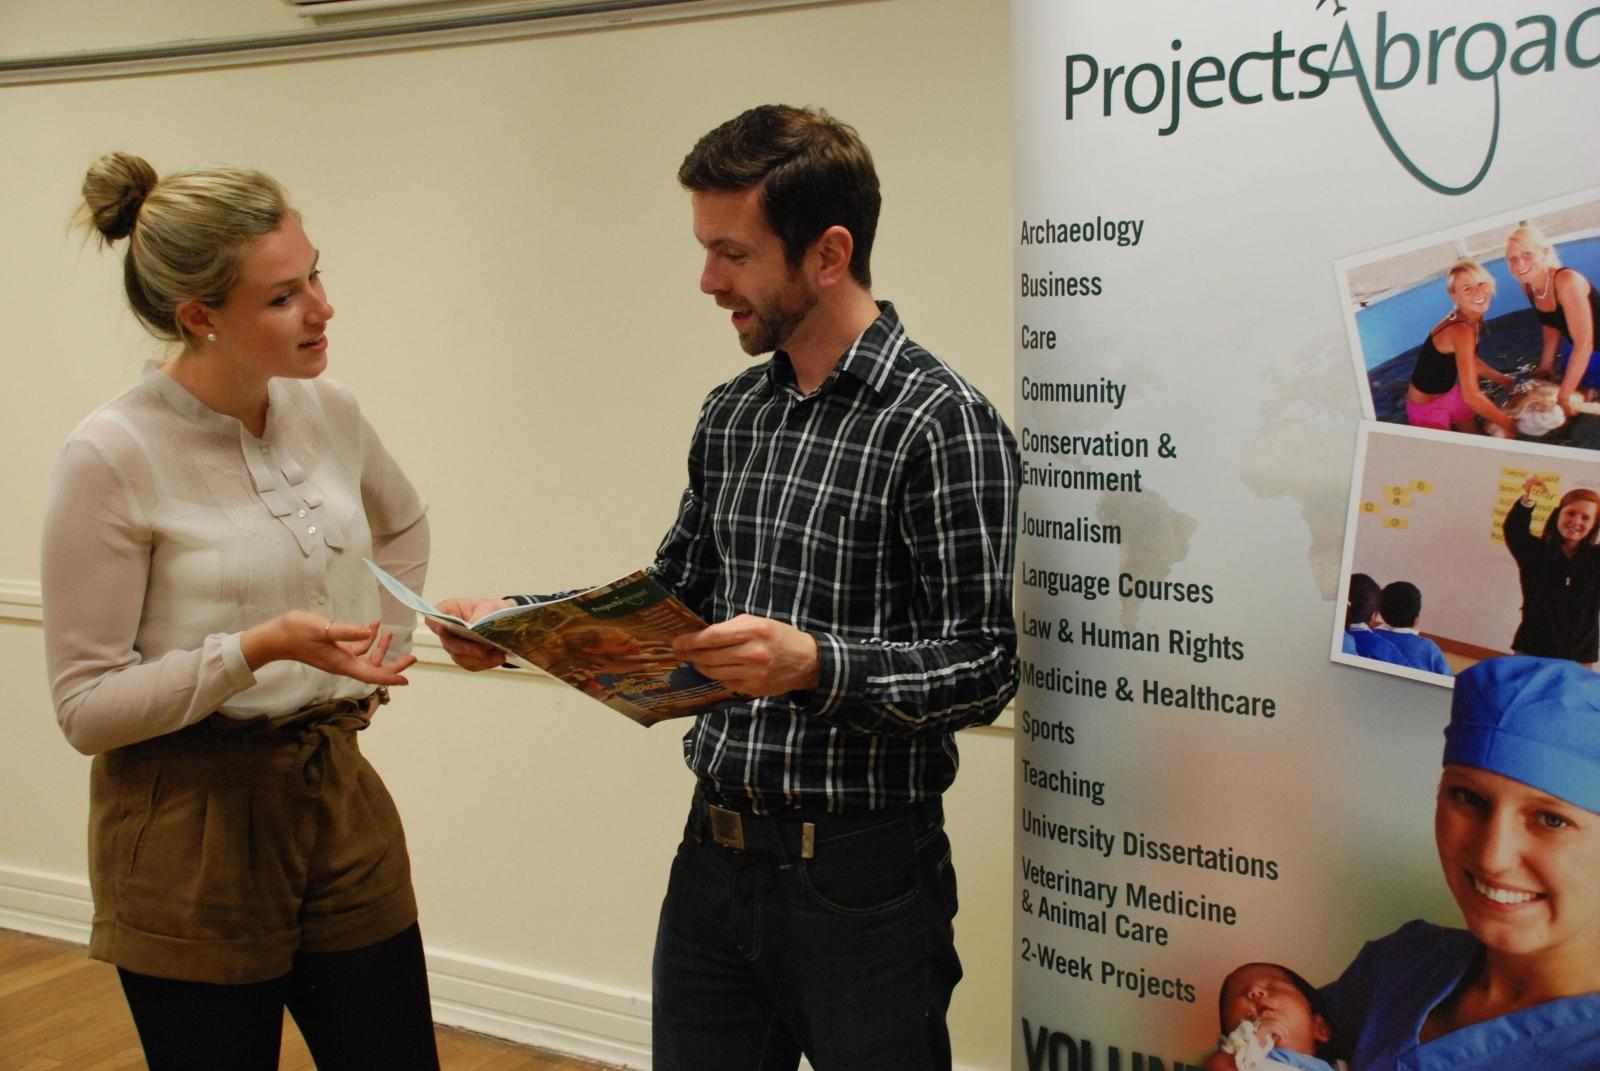 Staff from Projects Abroad's recruitment team hold an open day.